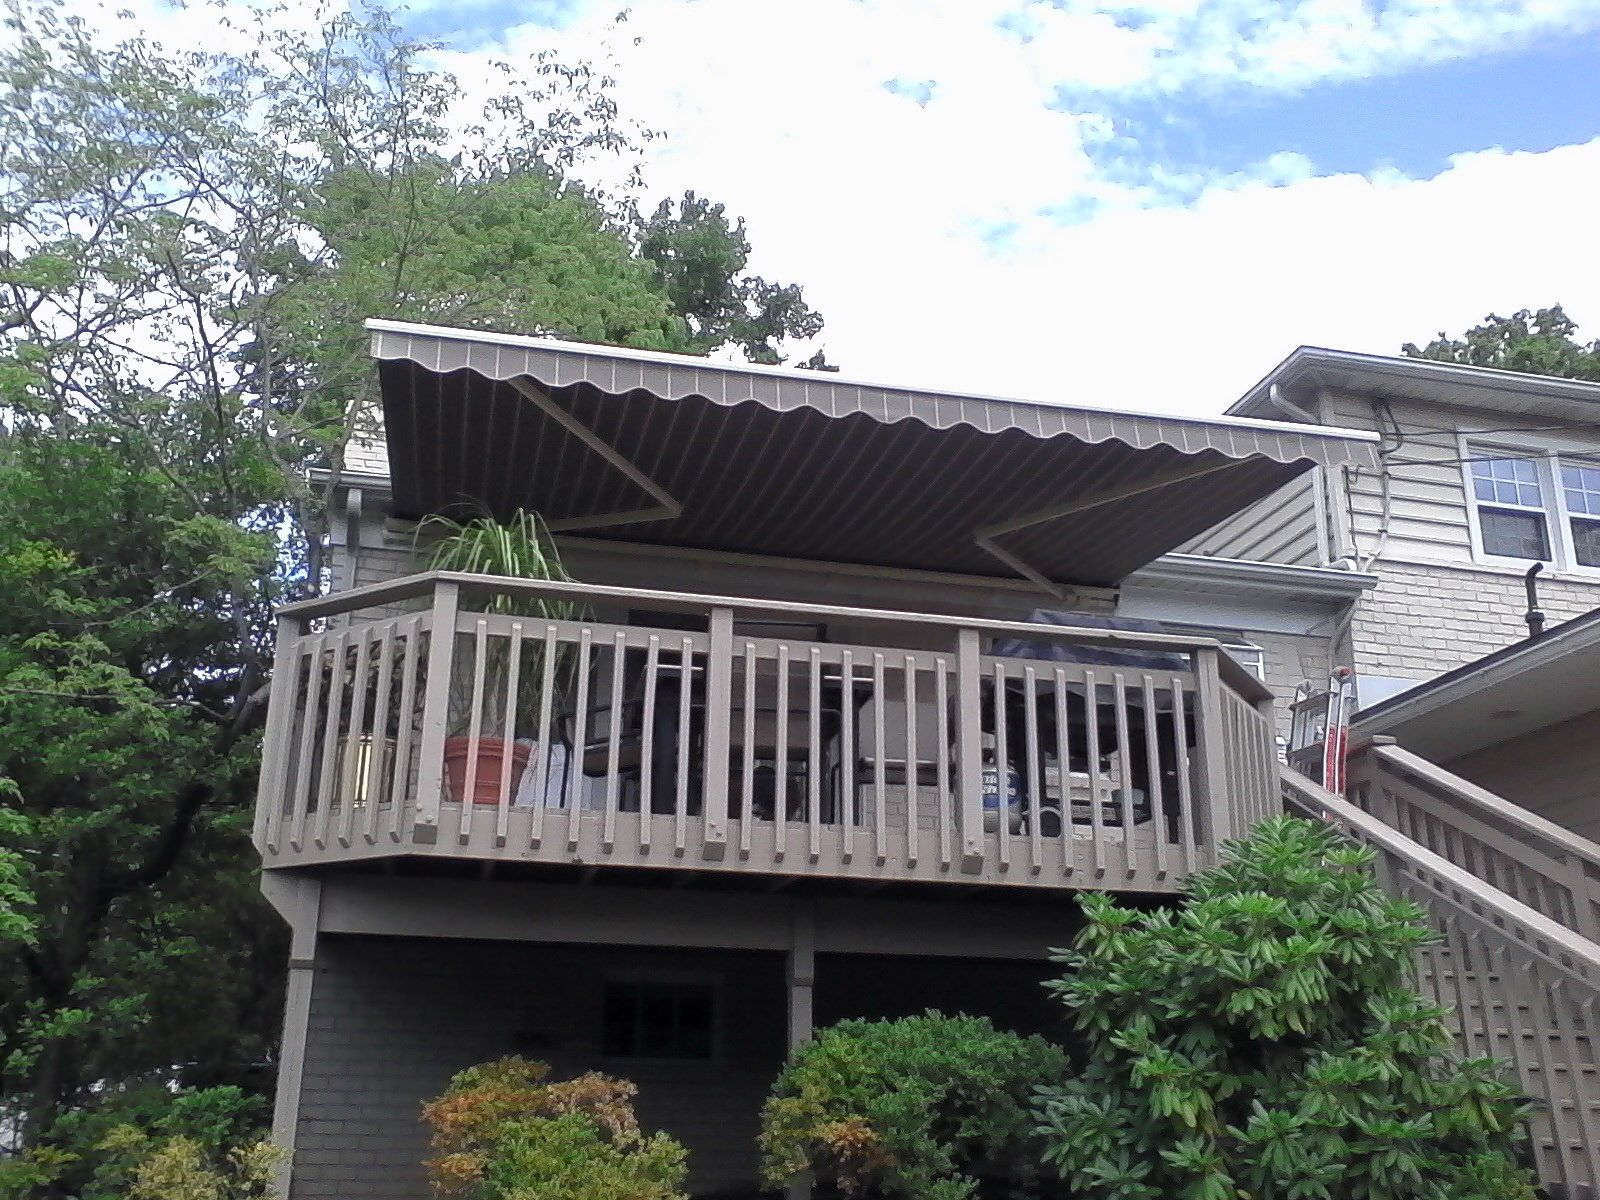 RetractableAwning-Baltimore | Retractable awning, Deck ...